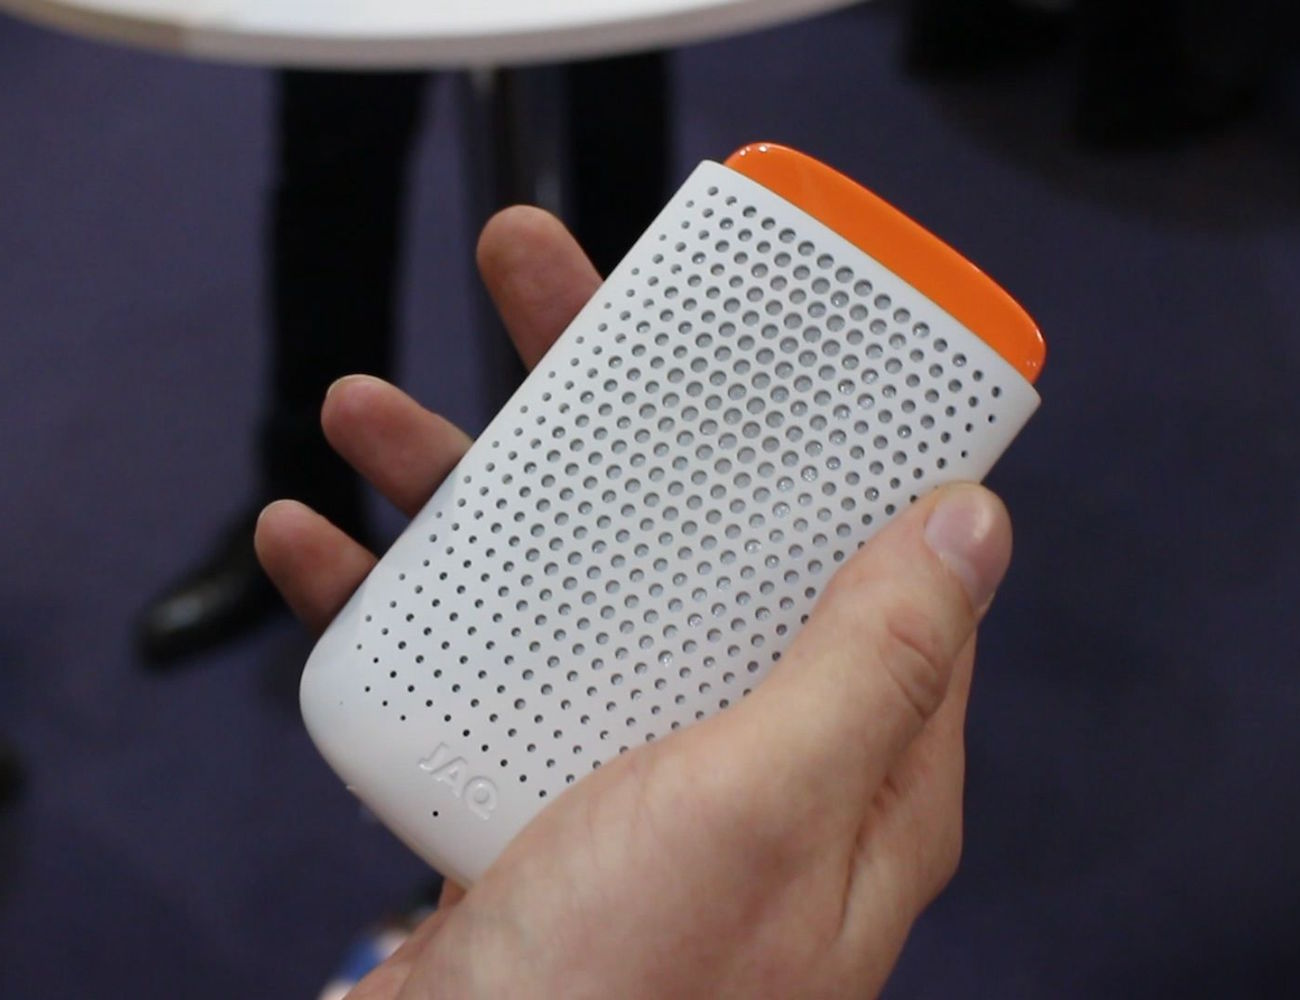 jaq-fuel-cell-charger-future-of-portable-charging-02